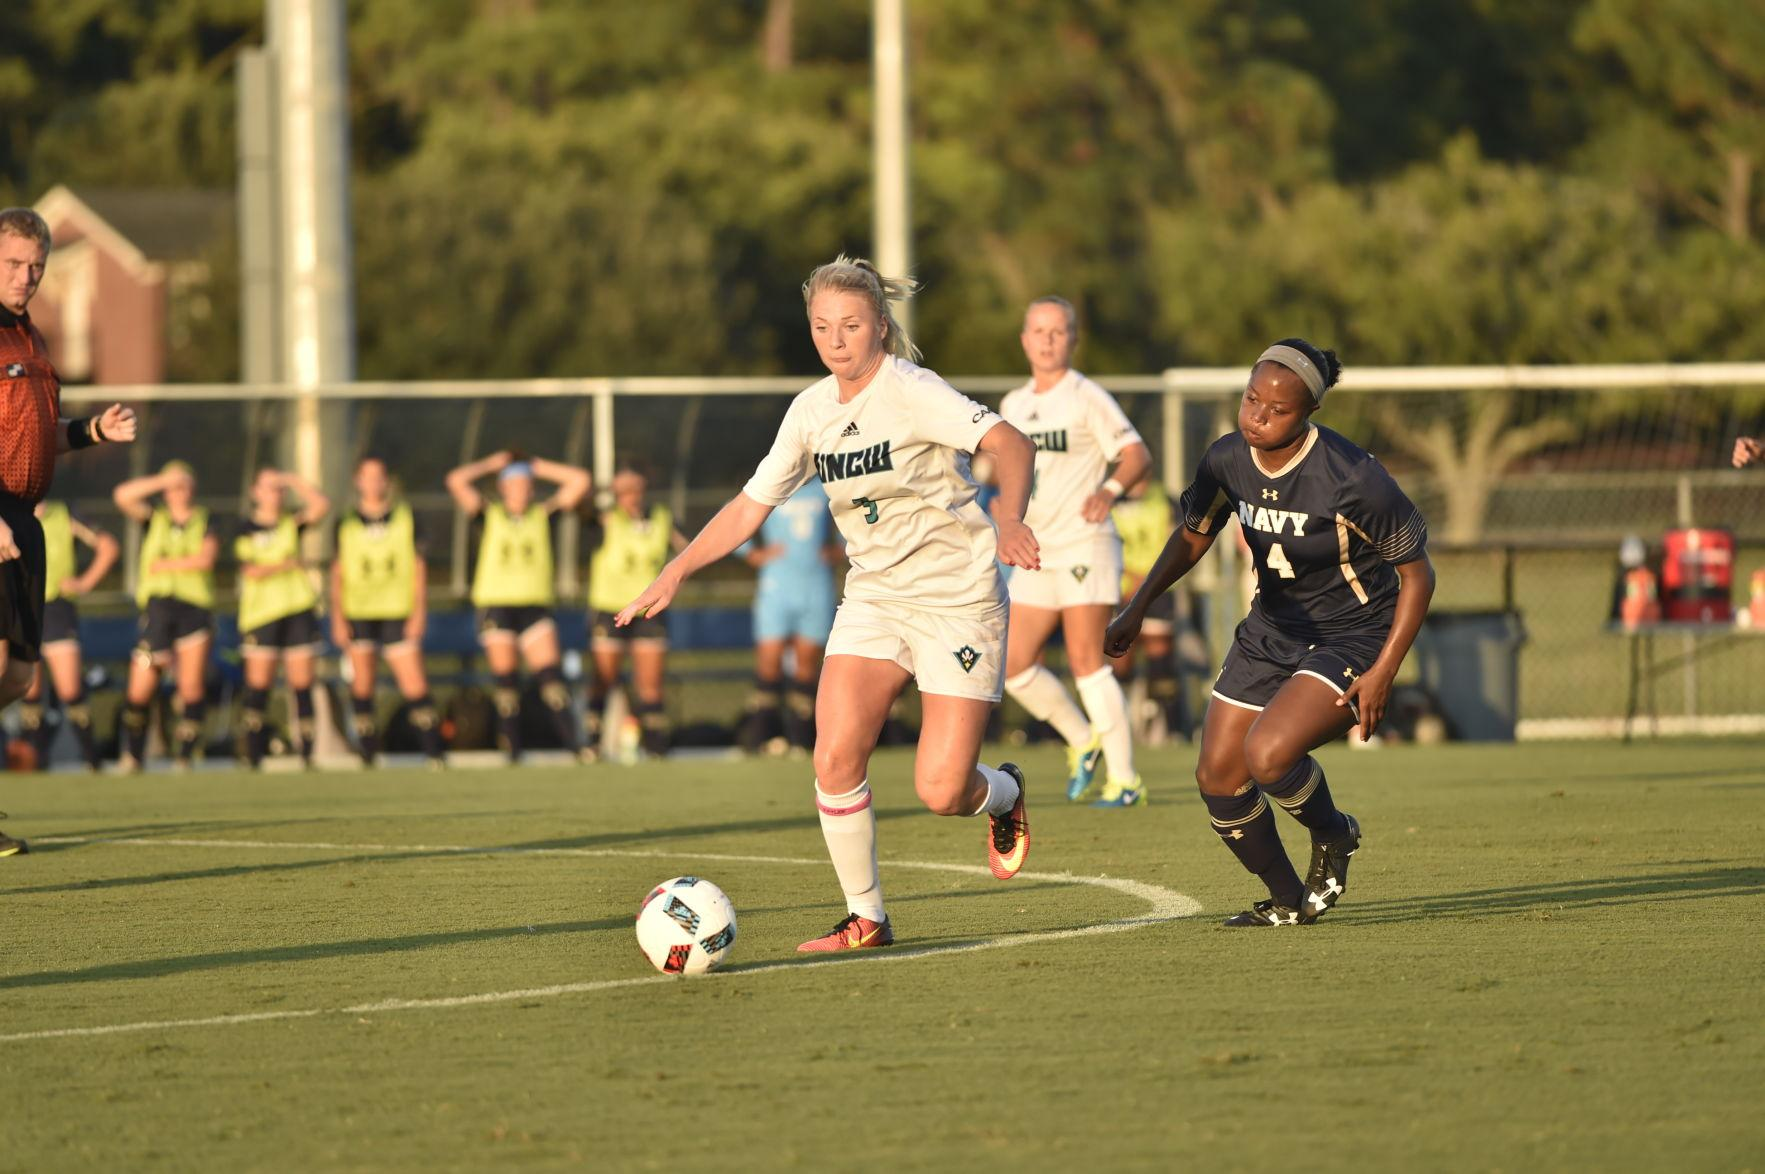 Mao Jarl, 5, scored the first goal of her senior campaign Friday in a 2-2 draw against Navy.